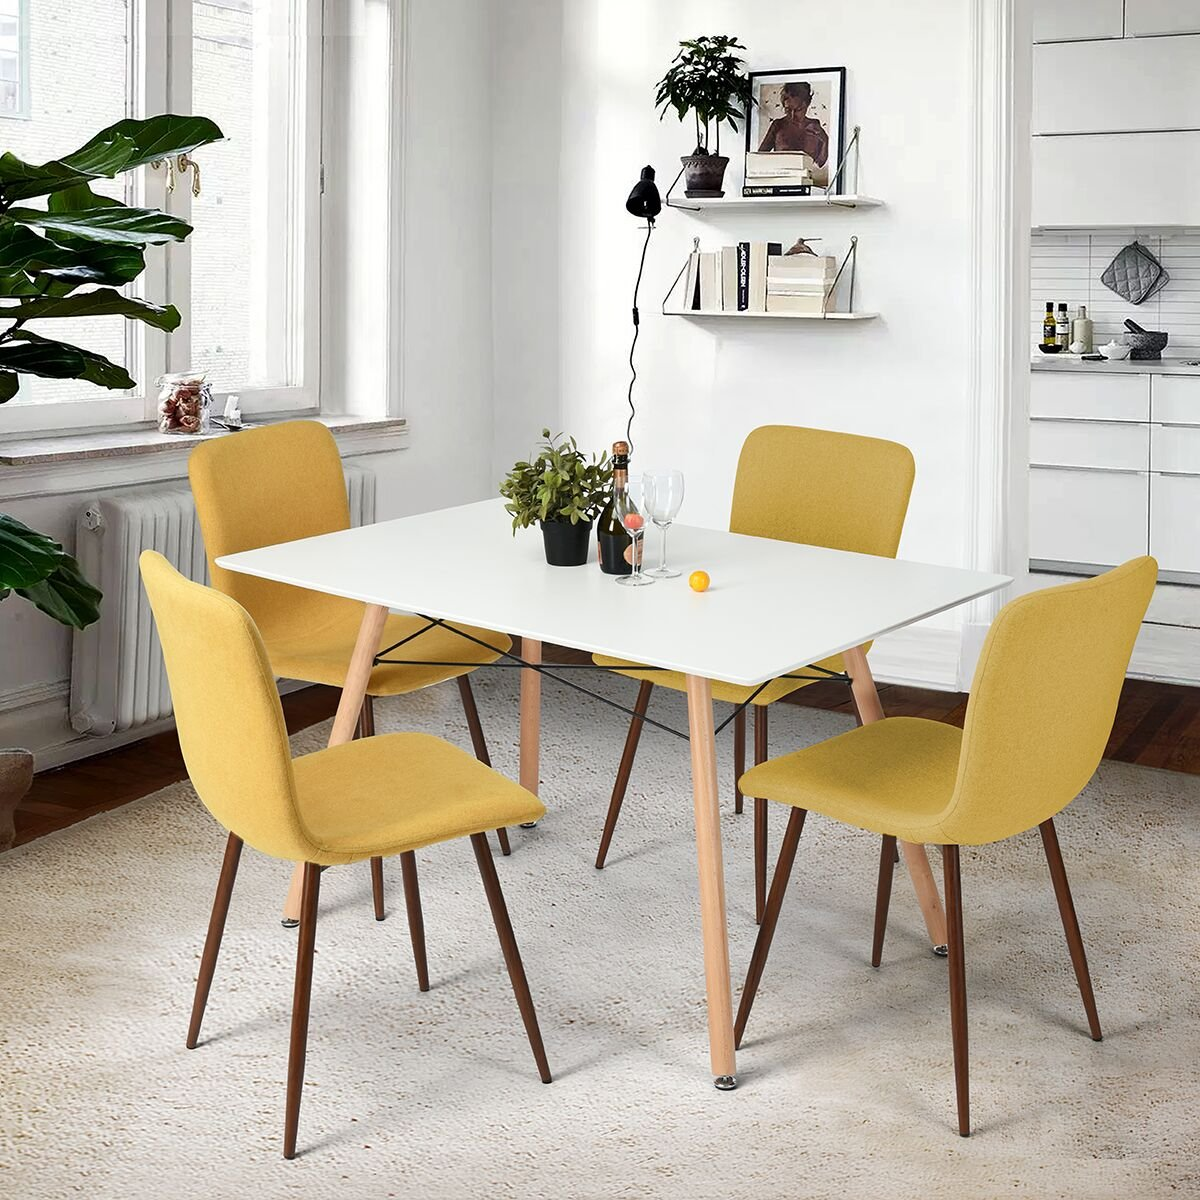 Coavas Set of 4 Dining Chairs Fabric Cushion Kitchen Side Chairs with Sturdy Metal Legs for Dining Room, Yellow by Coavas (Image #6)